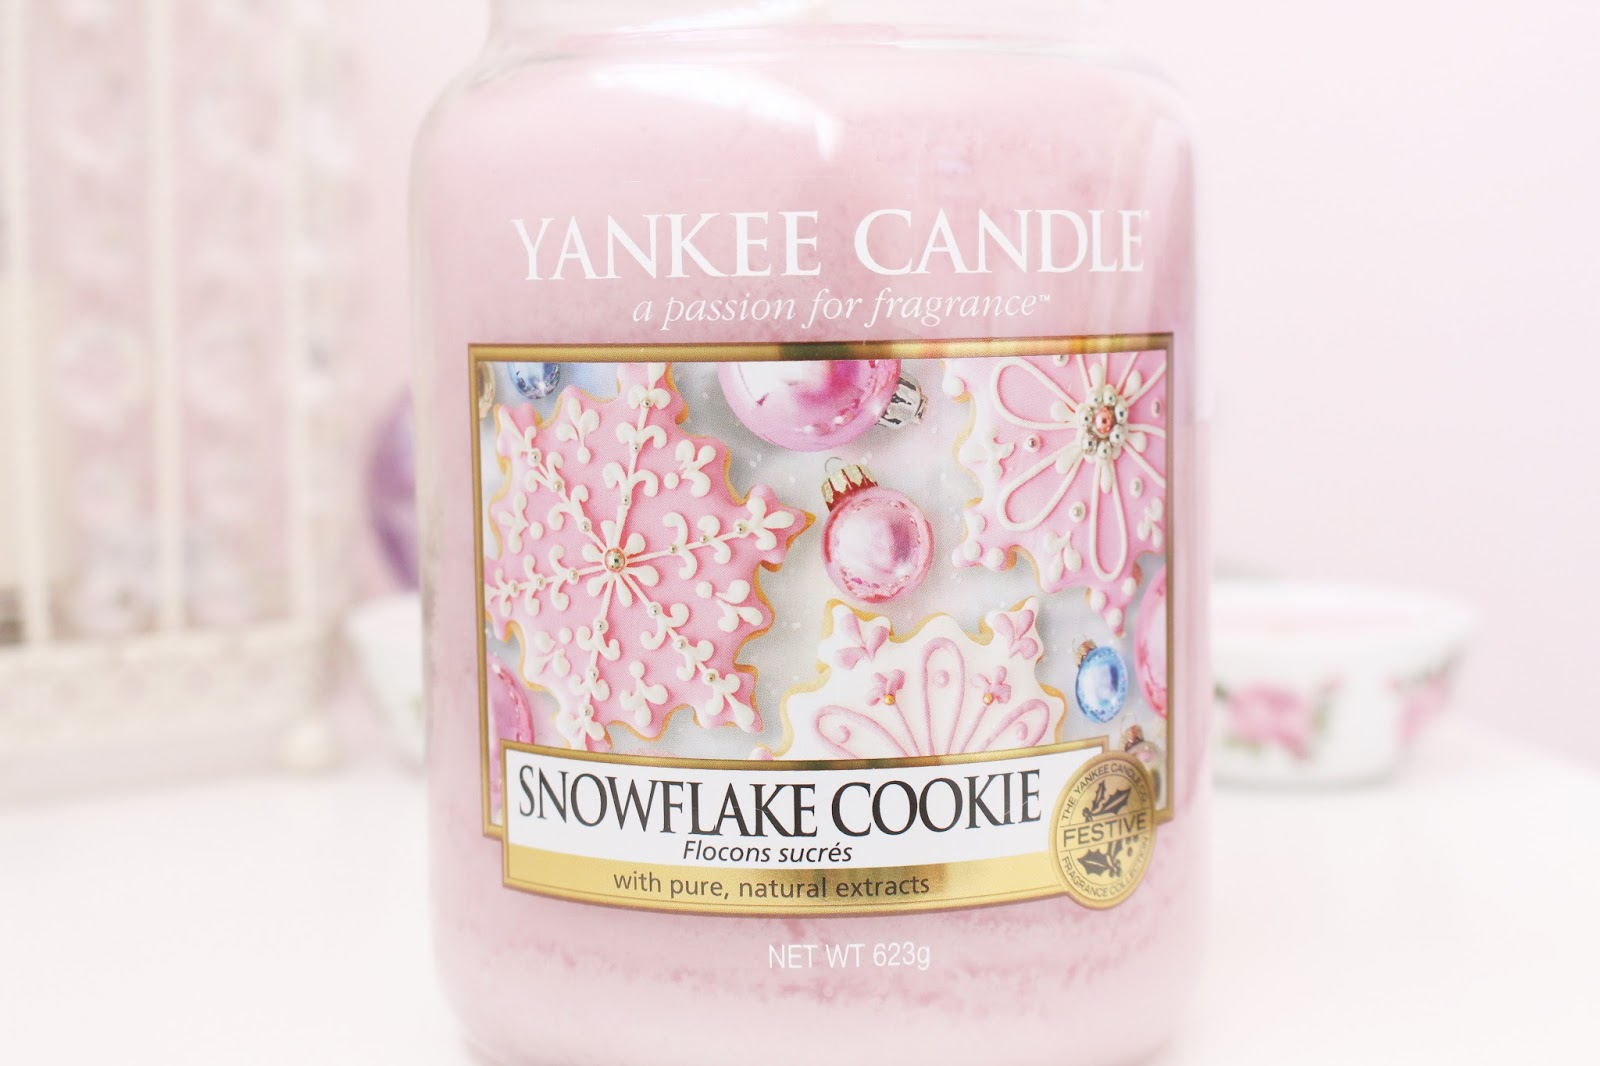 Yankee Candle Snowflake Cookie Large Jar